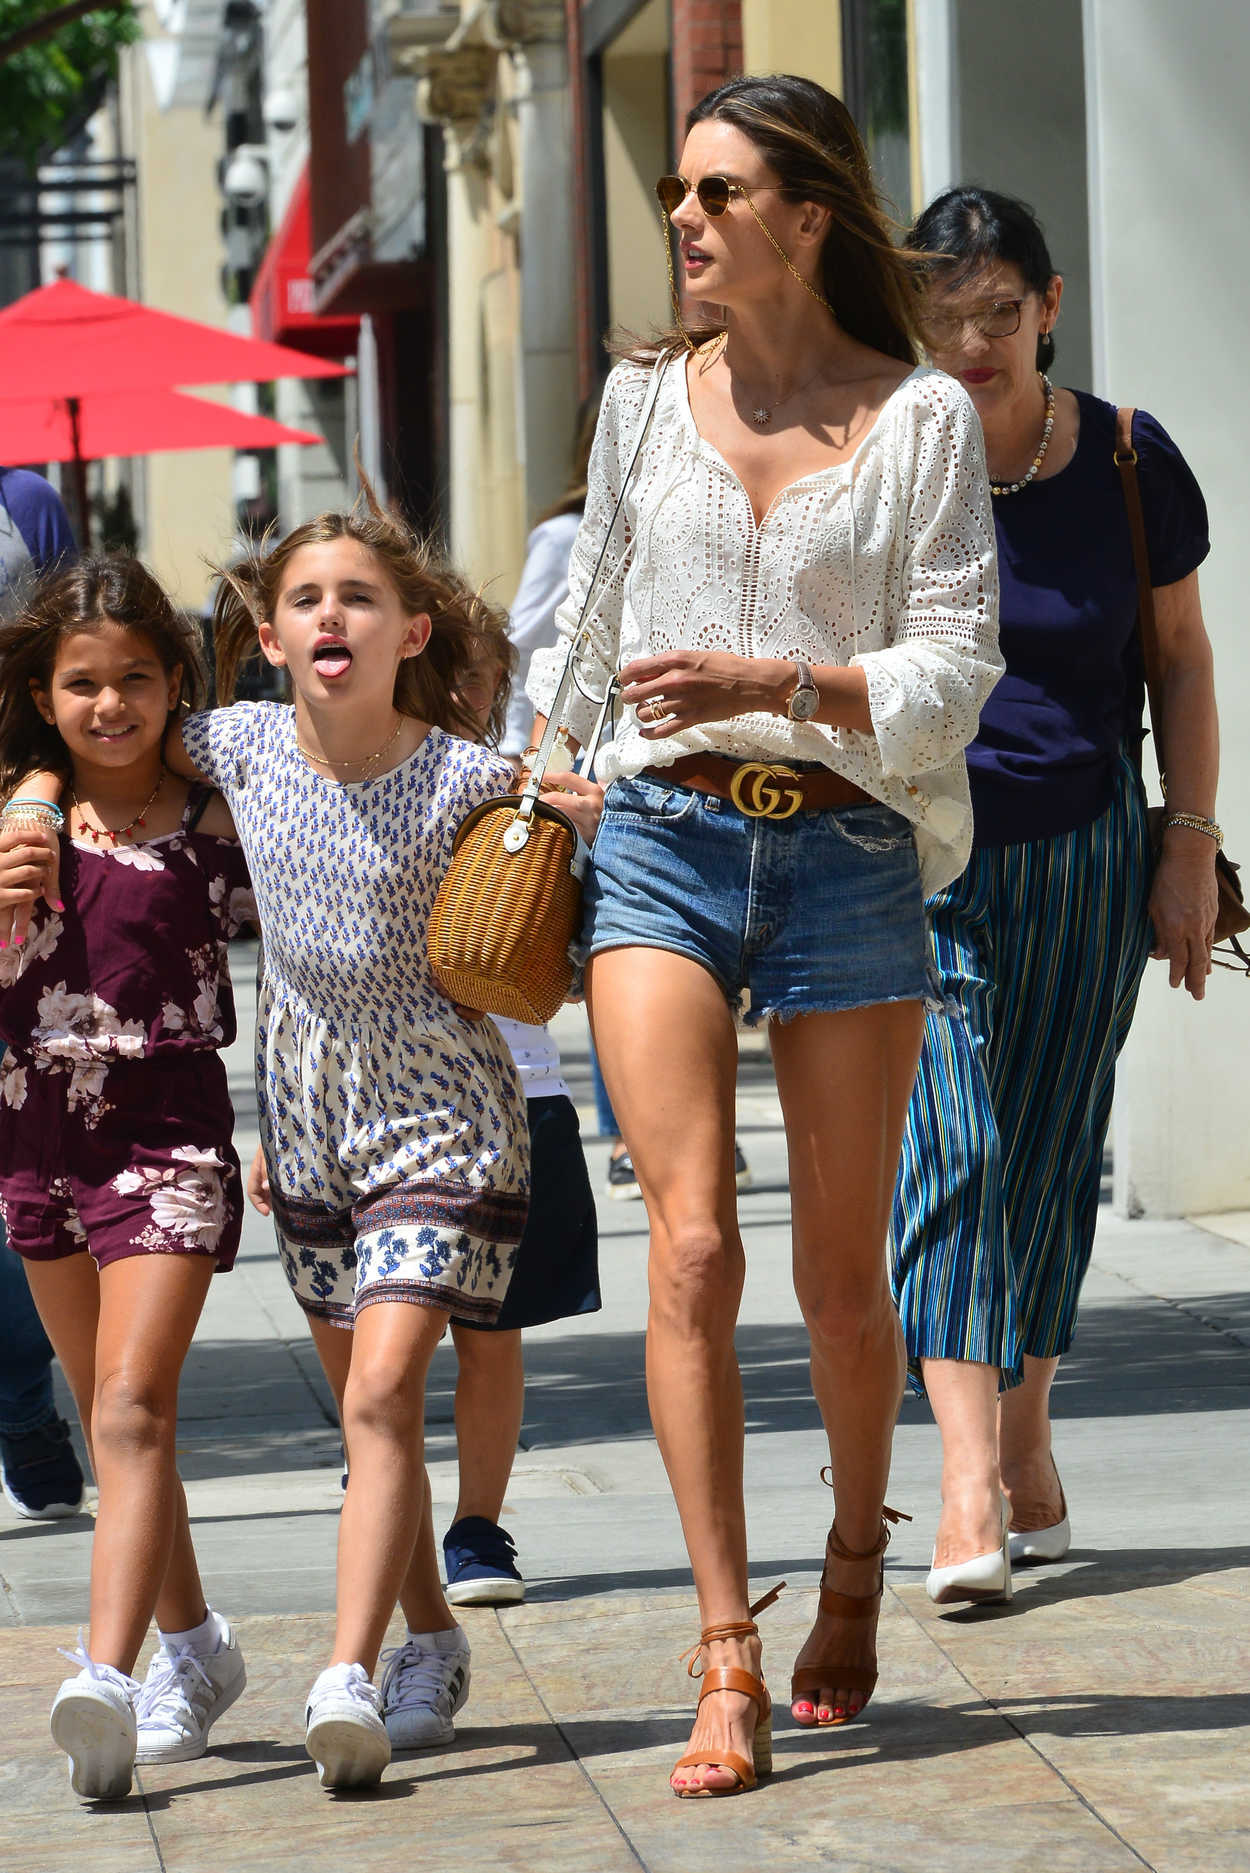 Alessandra Ambrosio Takes Her Daughter Out To Lunch On Her